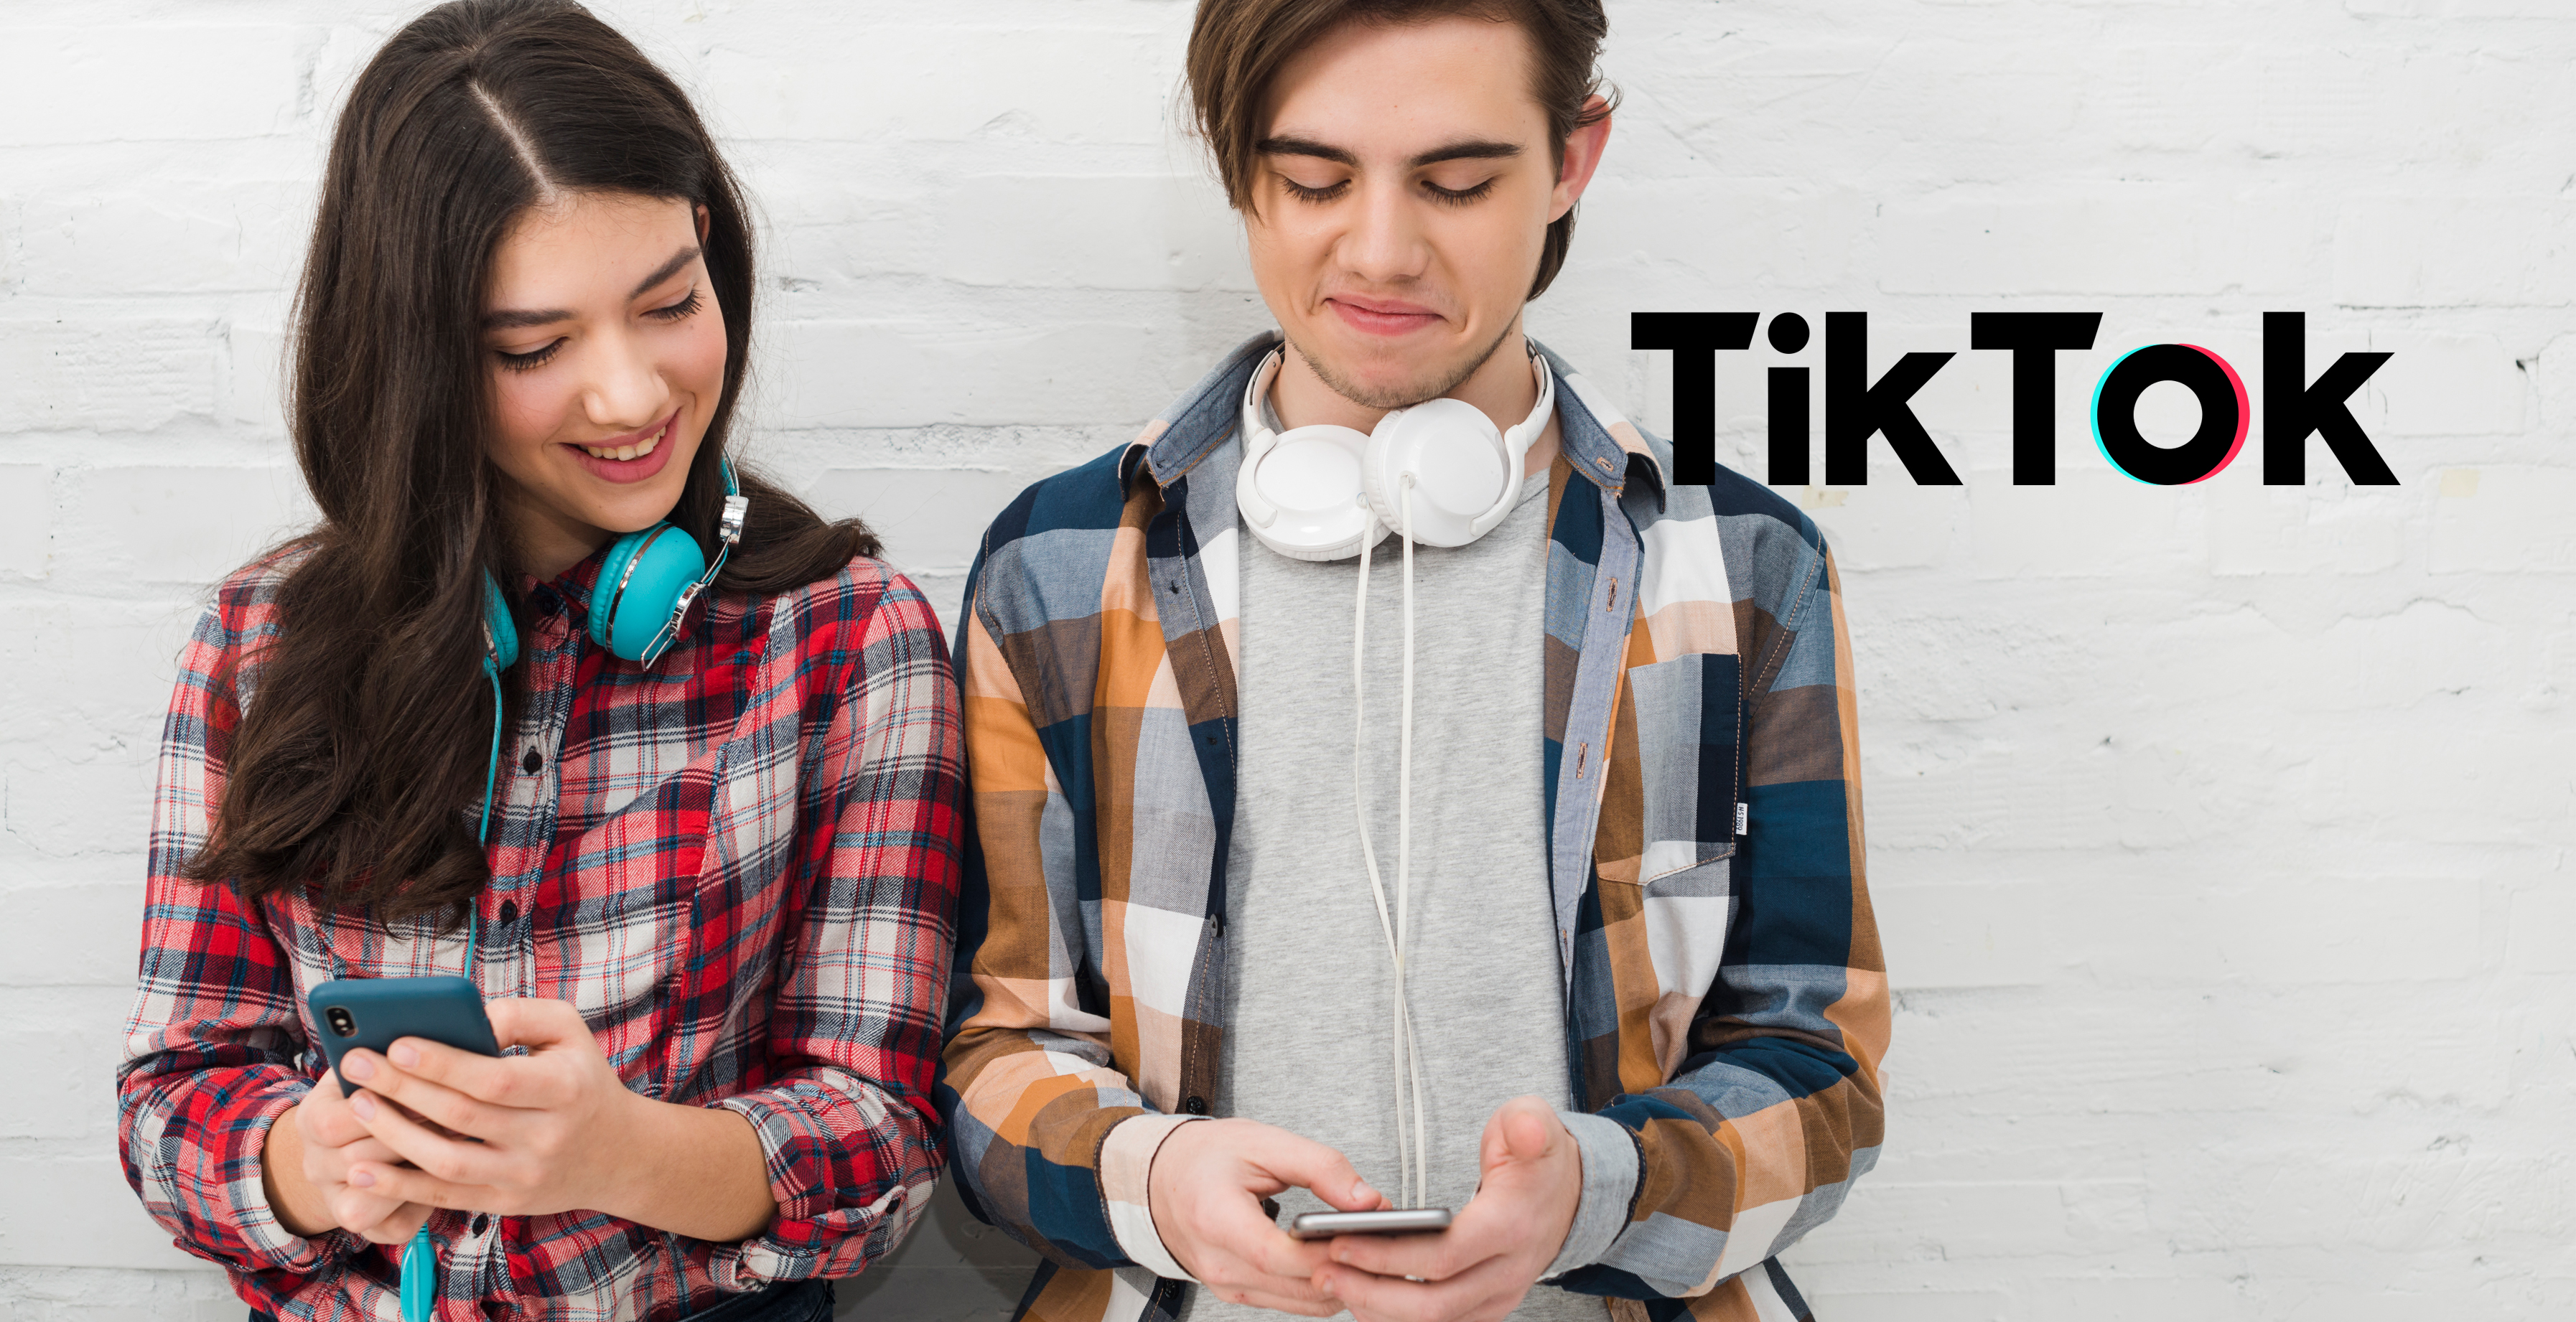 TikTok: what it is and why you should include it in your social media strategy